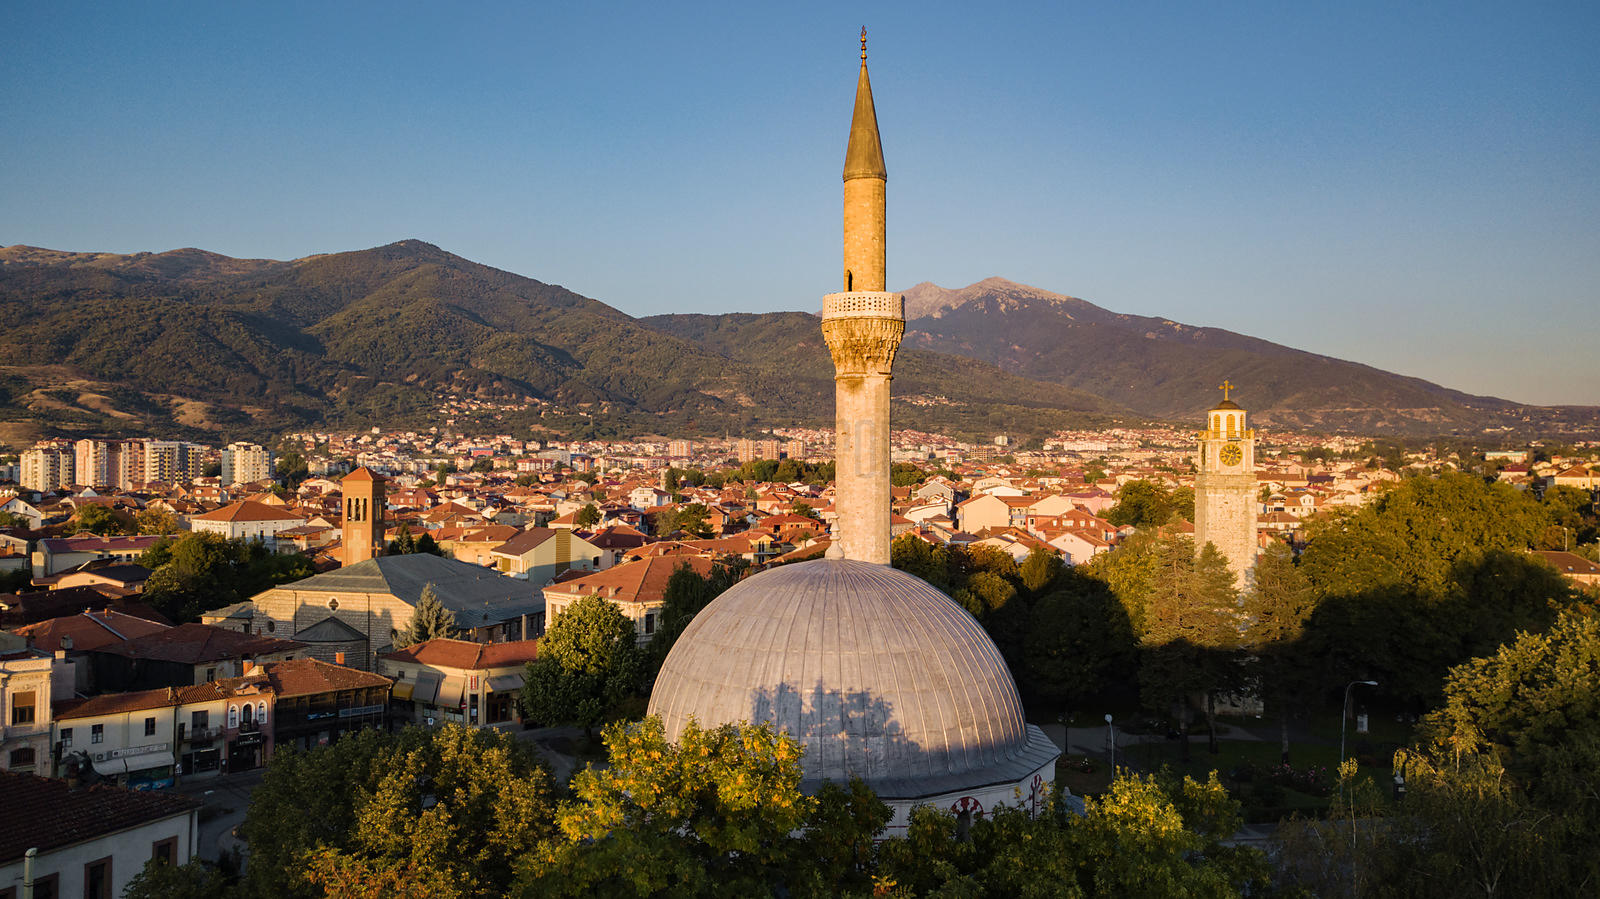 Elevated View of the Yeni Mosque and the Clock Tower at Sunrise